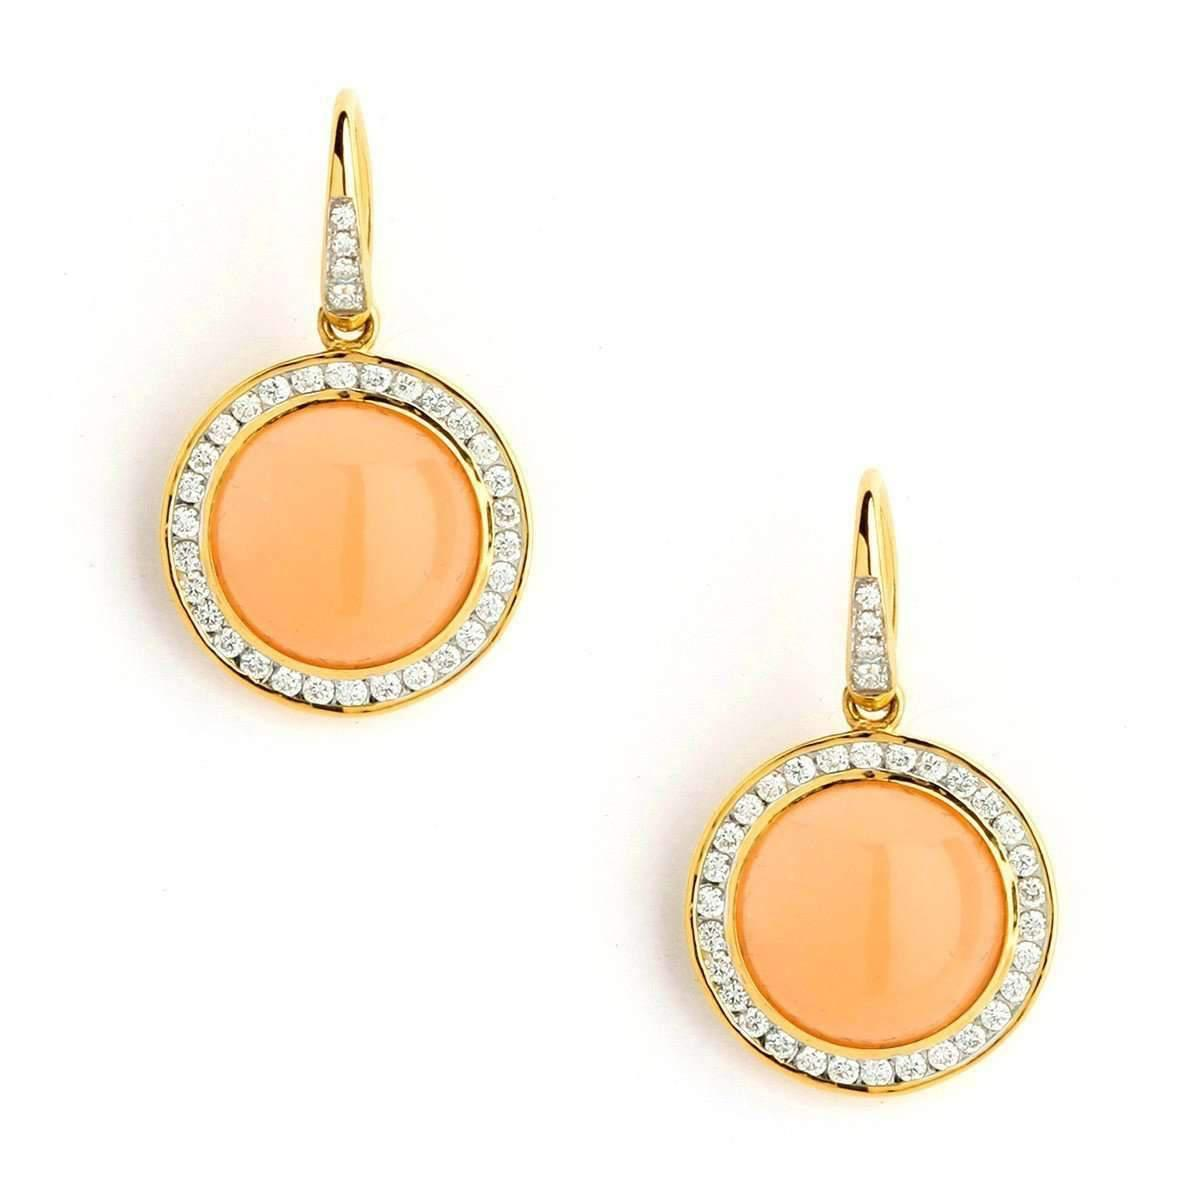 Syna 18kt Peach Moonstone Earrings With Diamonds ZOotE4OW